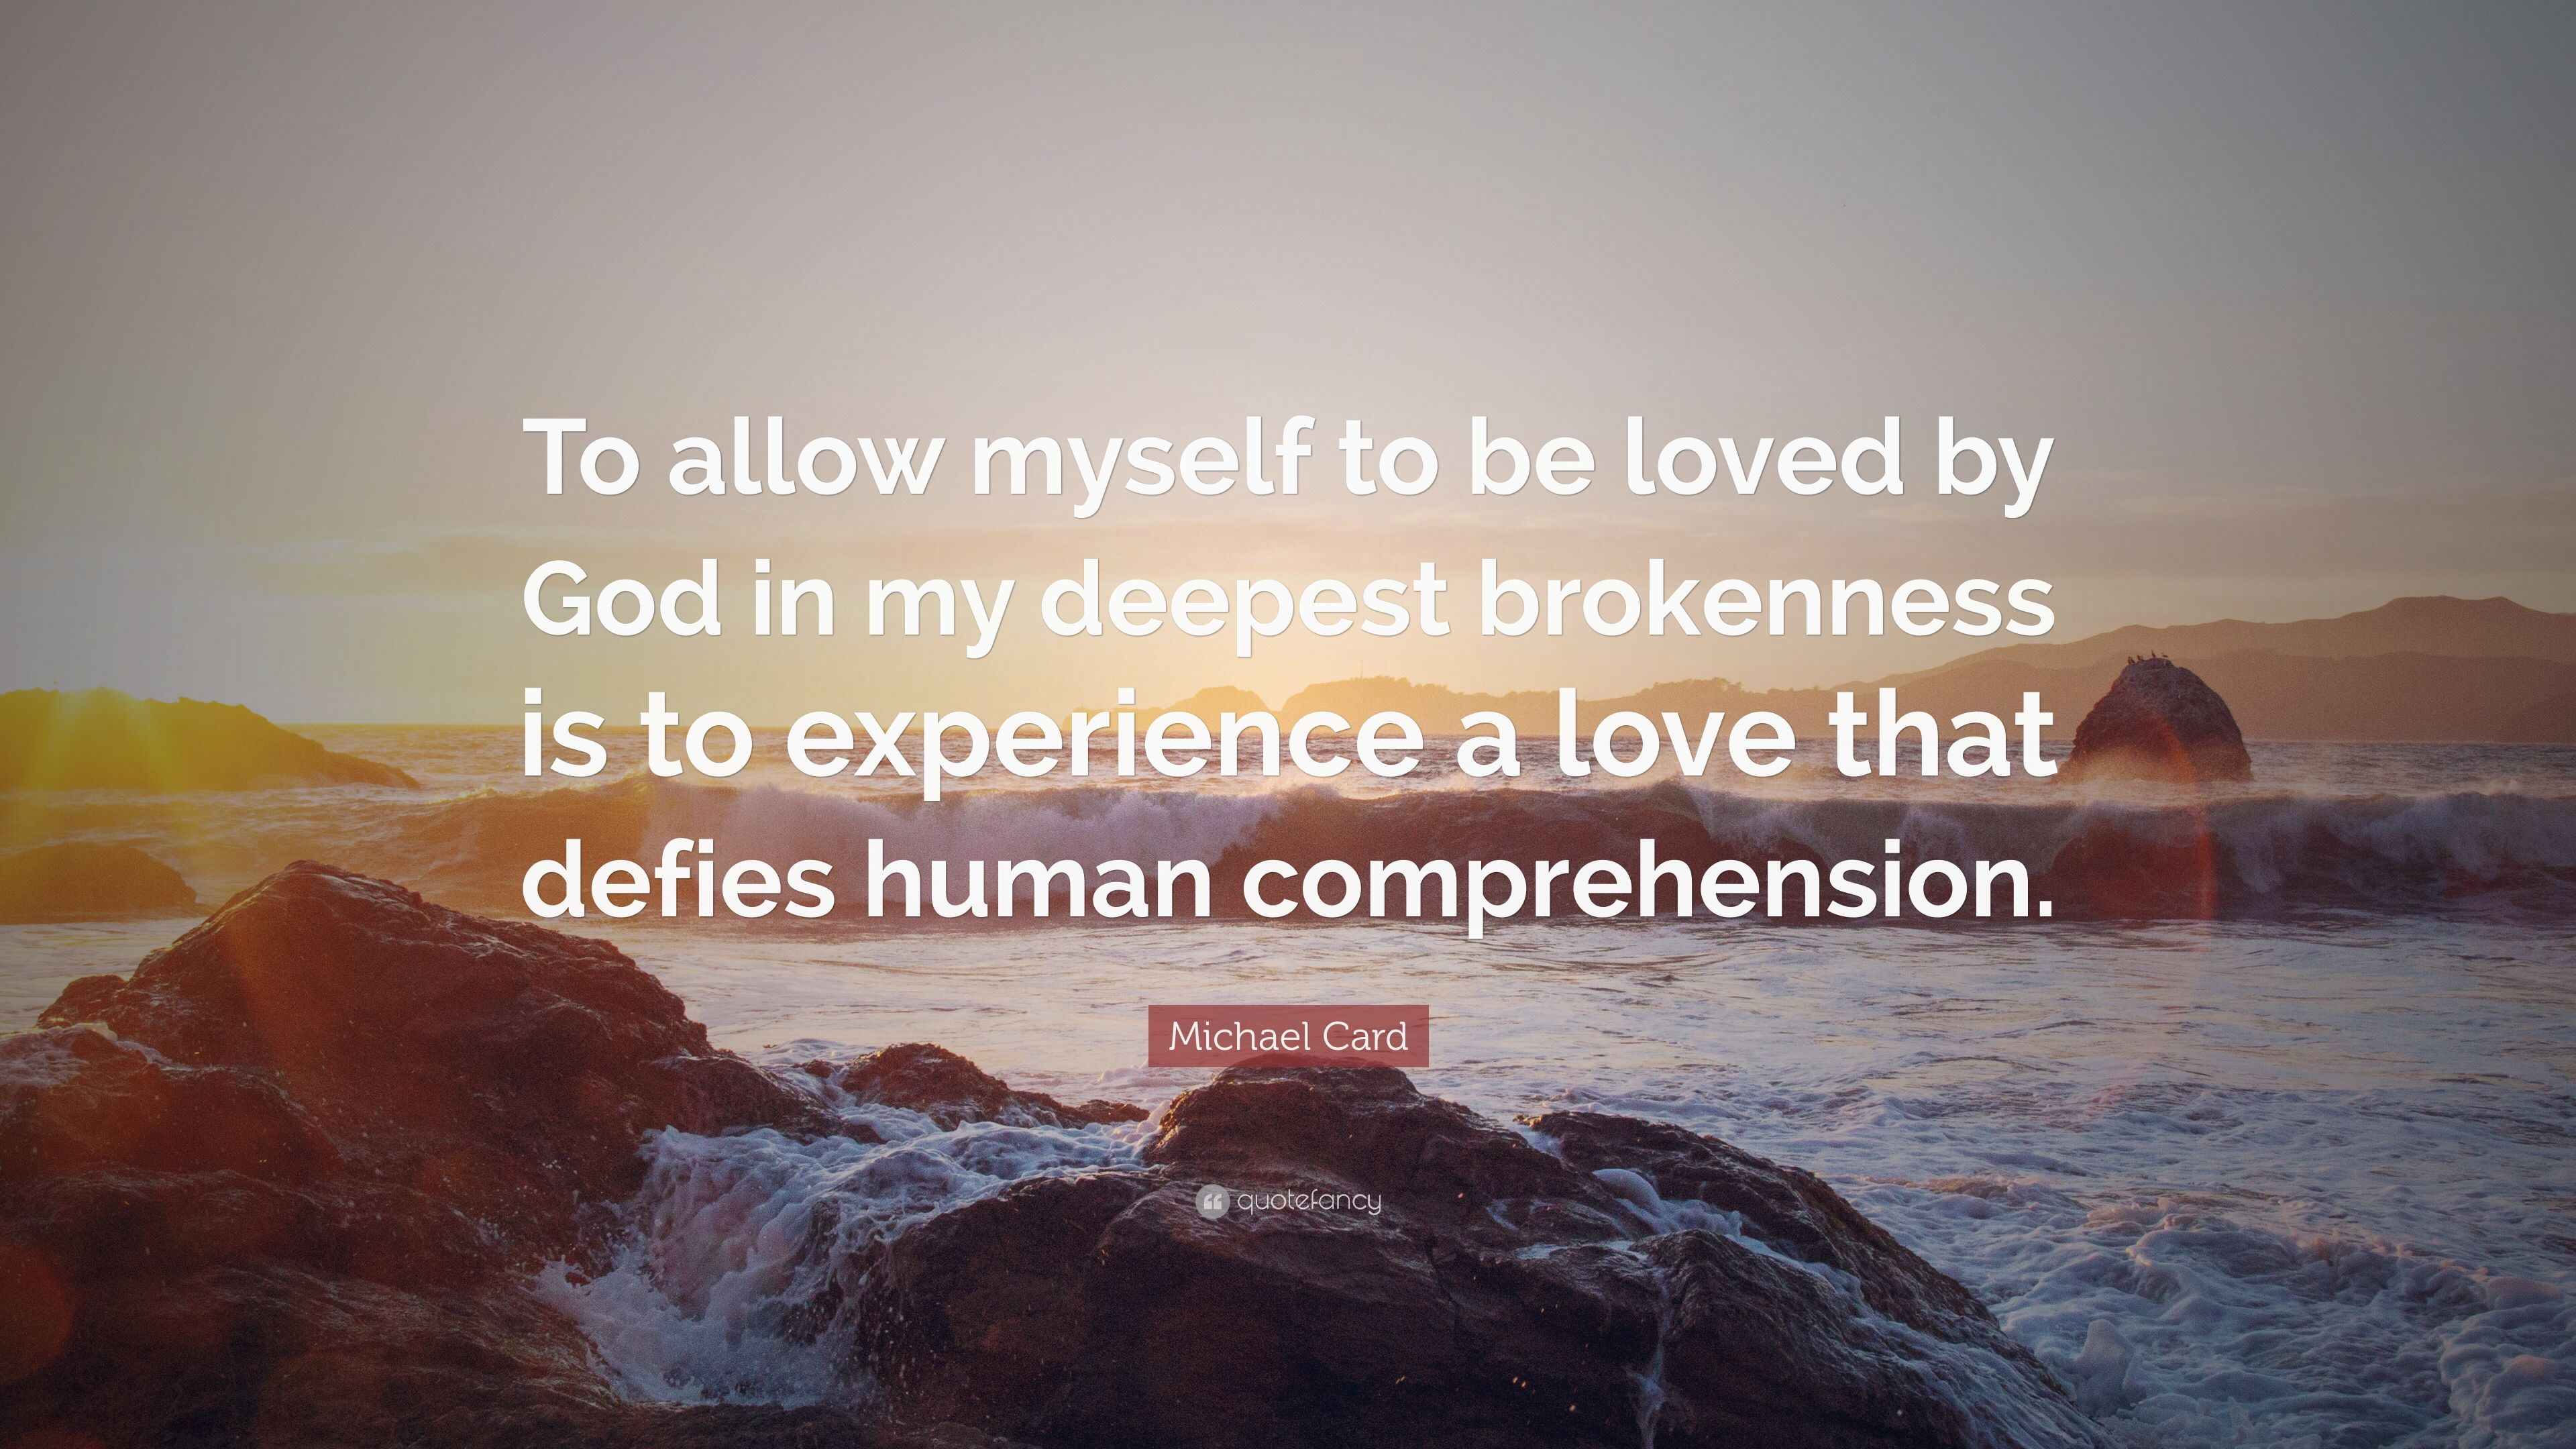 Michael Card Quote: U201cTo Allow Myself To Be Loved By God In My Deepest